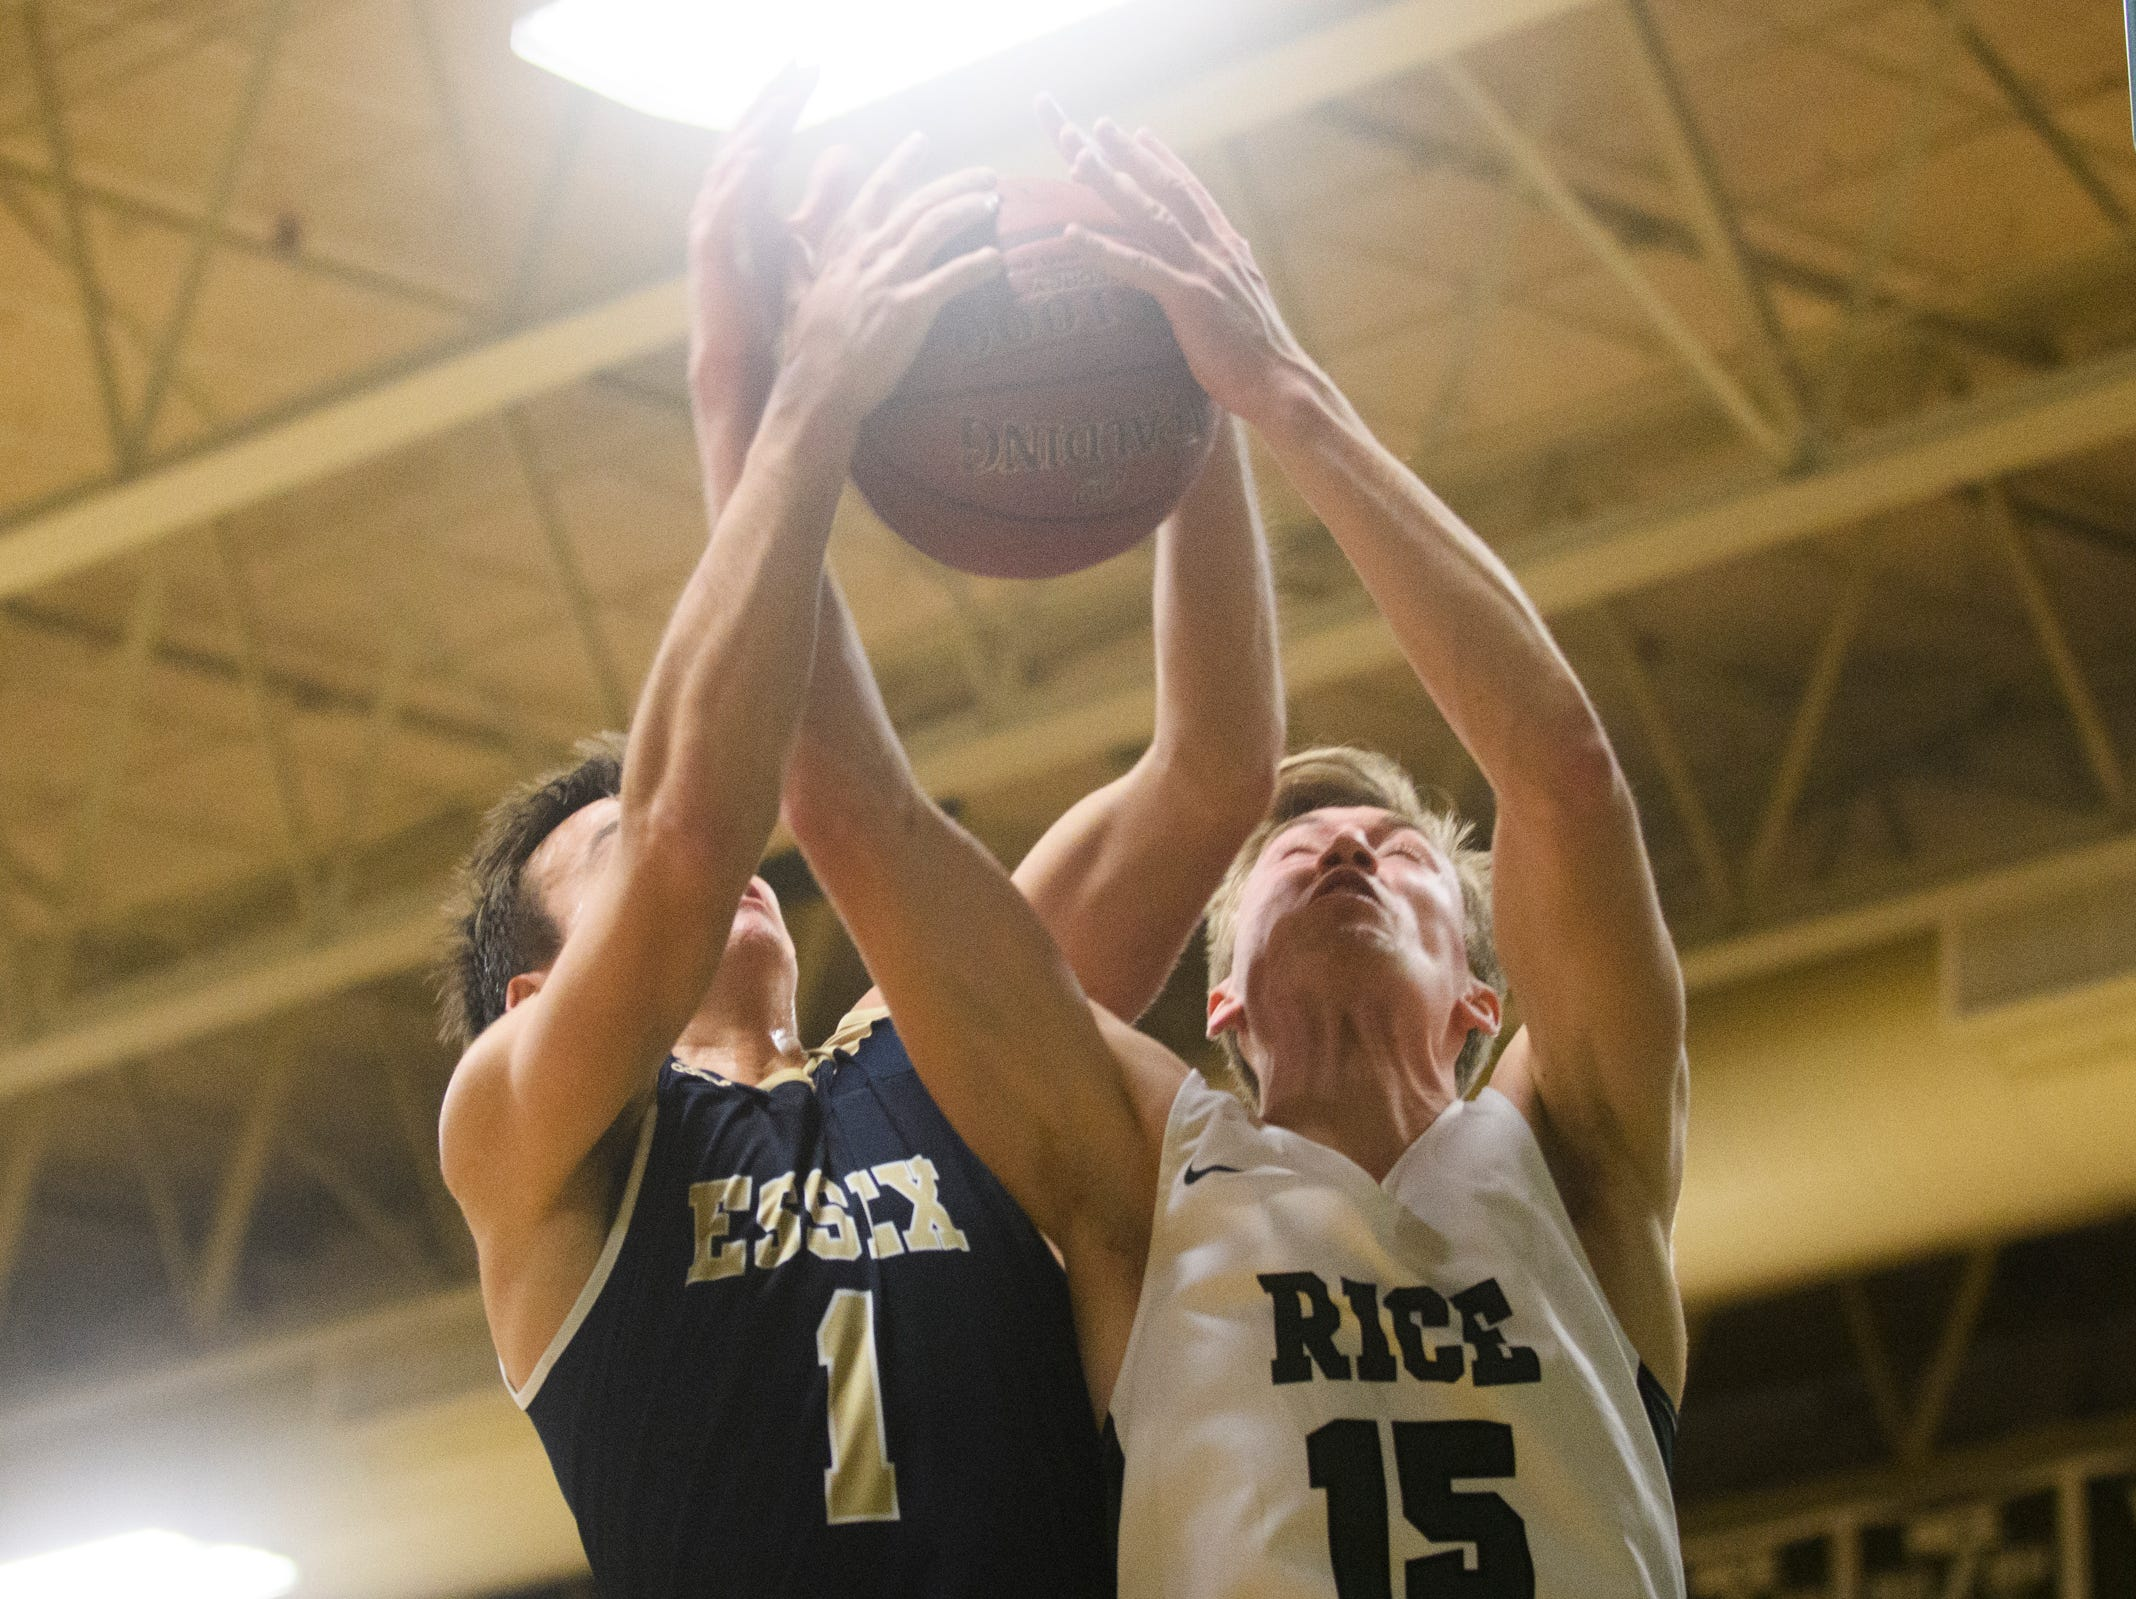 Rice's Andrew Snell (15) and Essex's Robbie Meslin (1) battle for the rebound during the boys quarterfinal basketball game between the Essex Hornets and the Rice Green Knights at Rice Memorial High School on Friday night March 8, 2019 in South Burlington, Vermont.